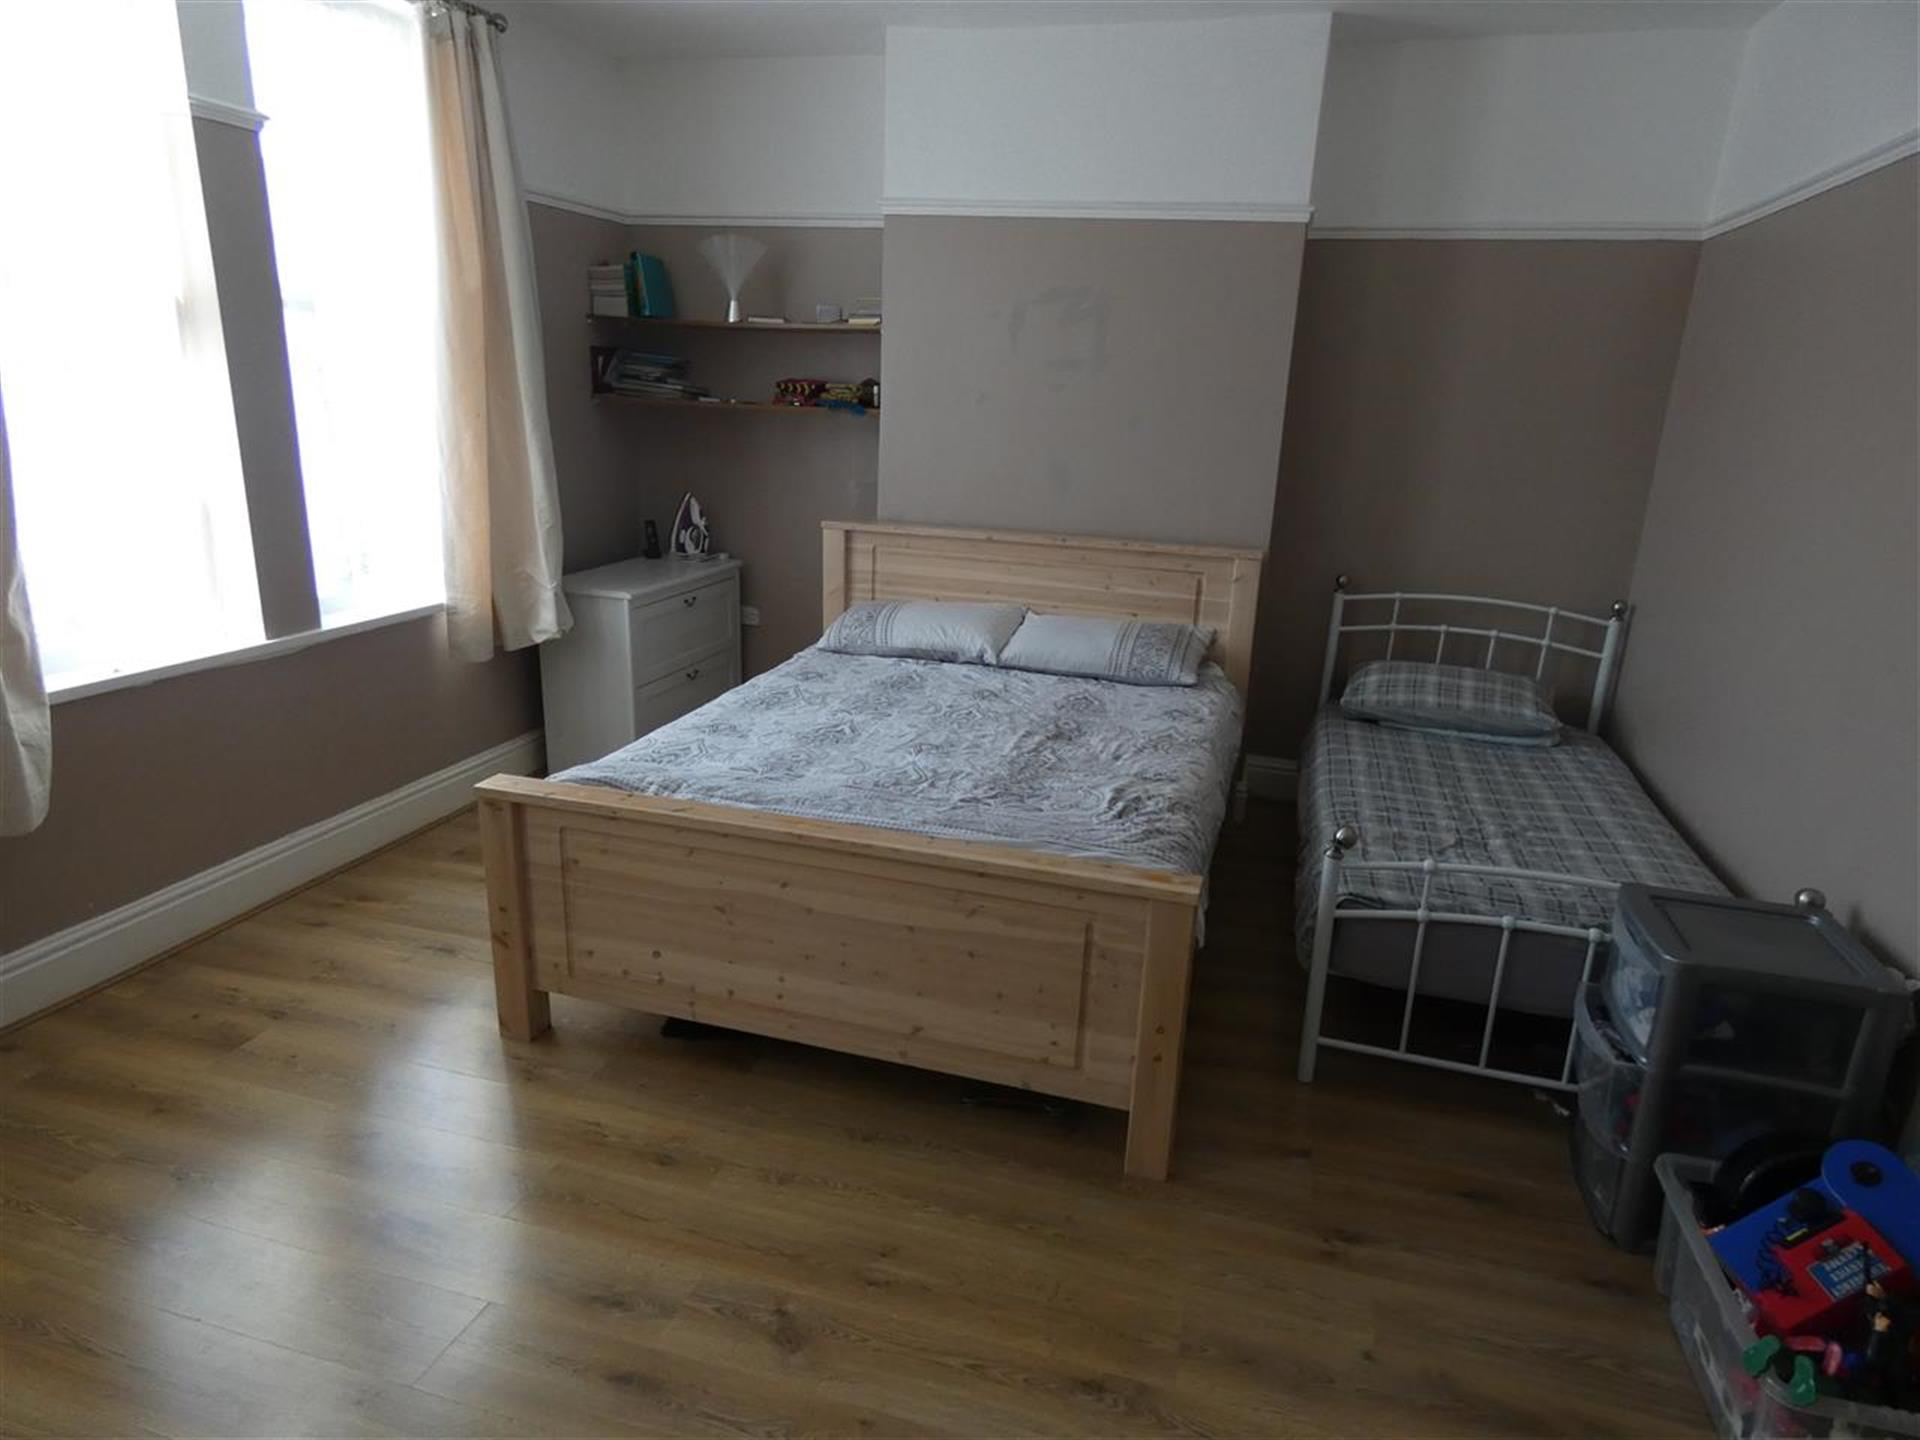 4 Bedroom Terraced House For Sale - Bedroom One